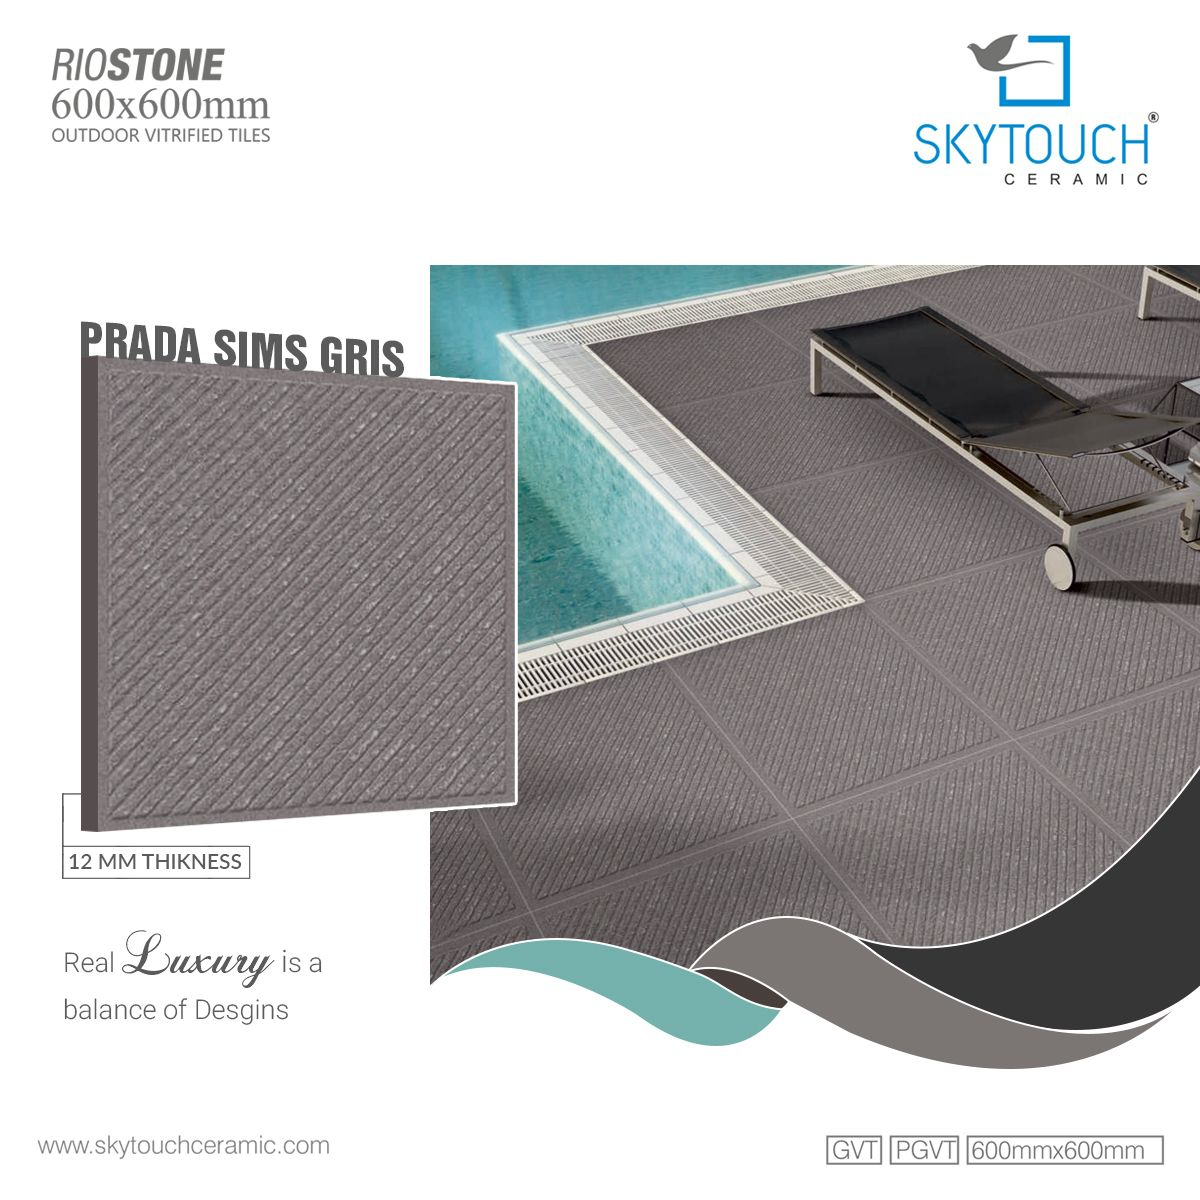 Pin By Skytouch Ceramic On افكار In 2020 Vitrified Tiles Tile Manufacturers Interior Tiles